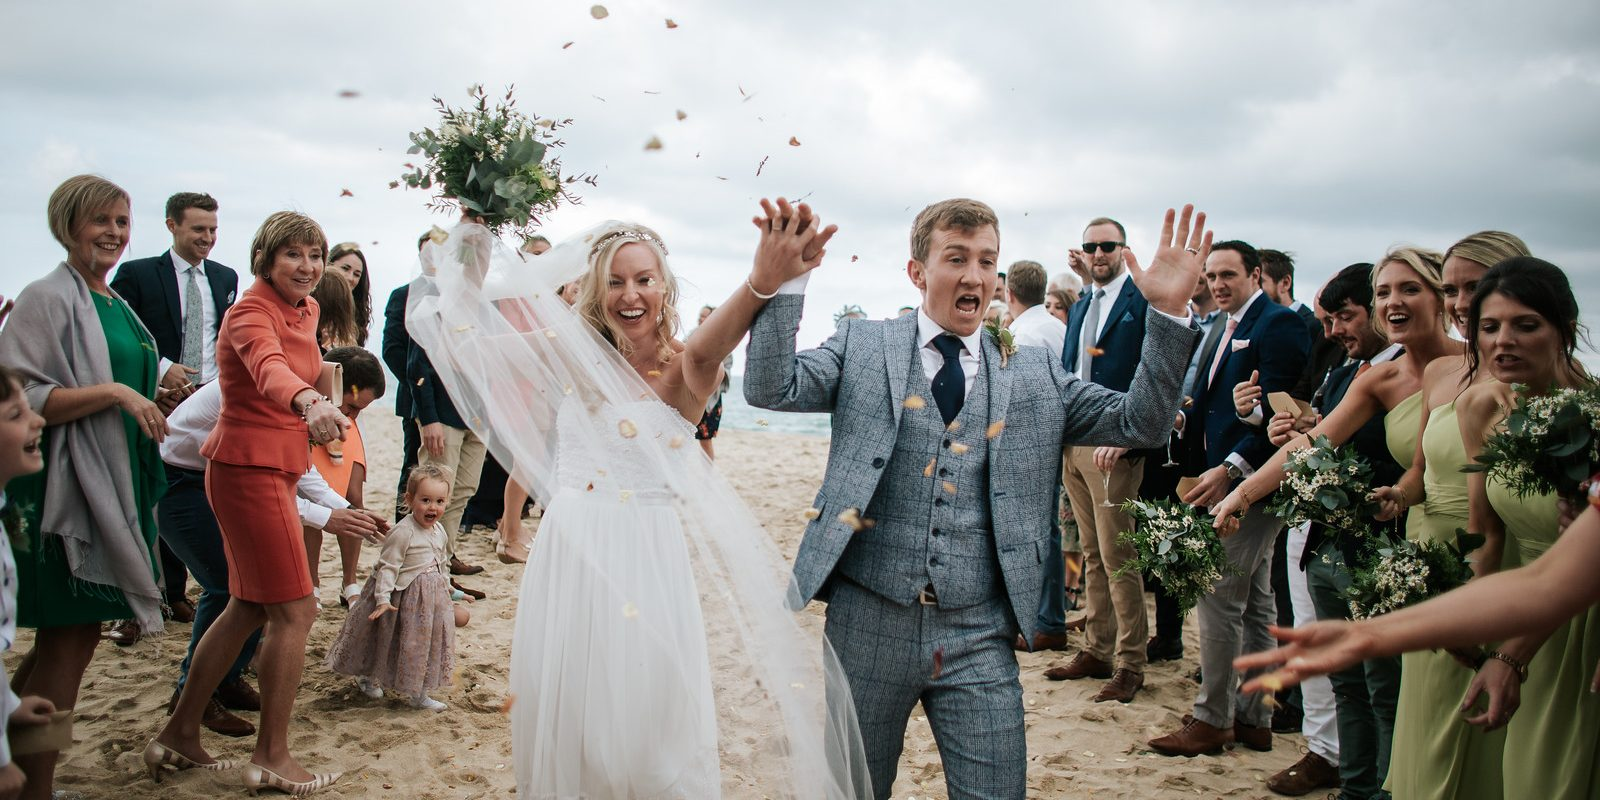 Katie and Andy's Wedding at Carbis Bay